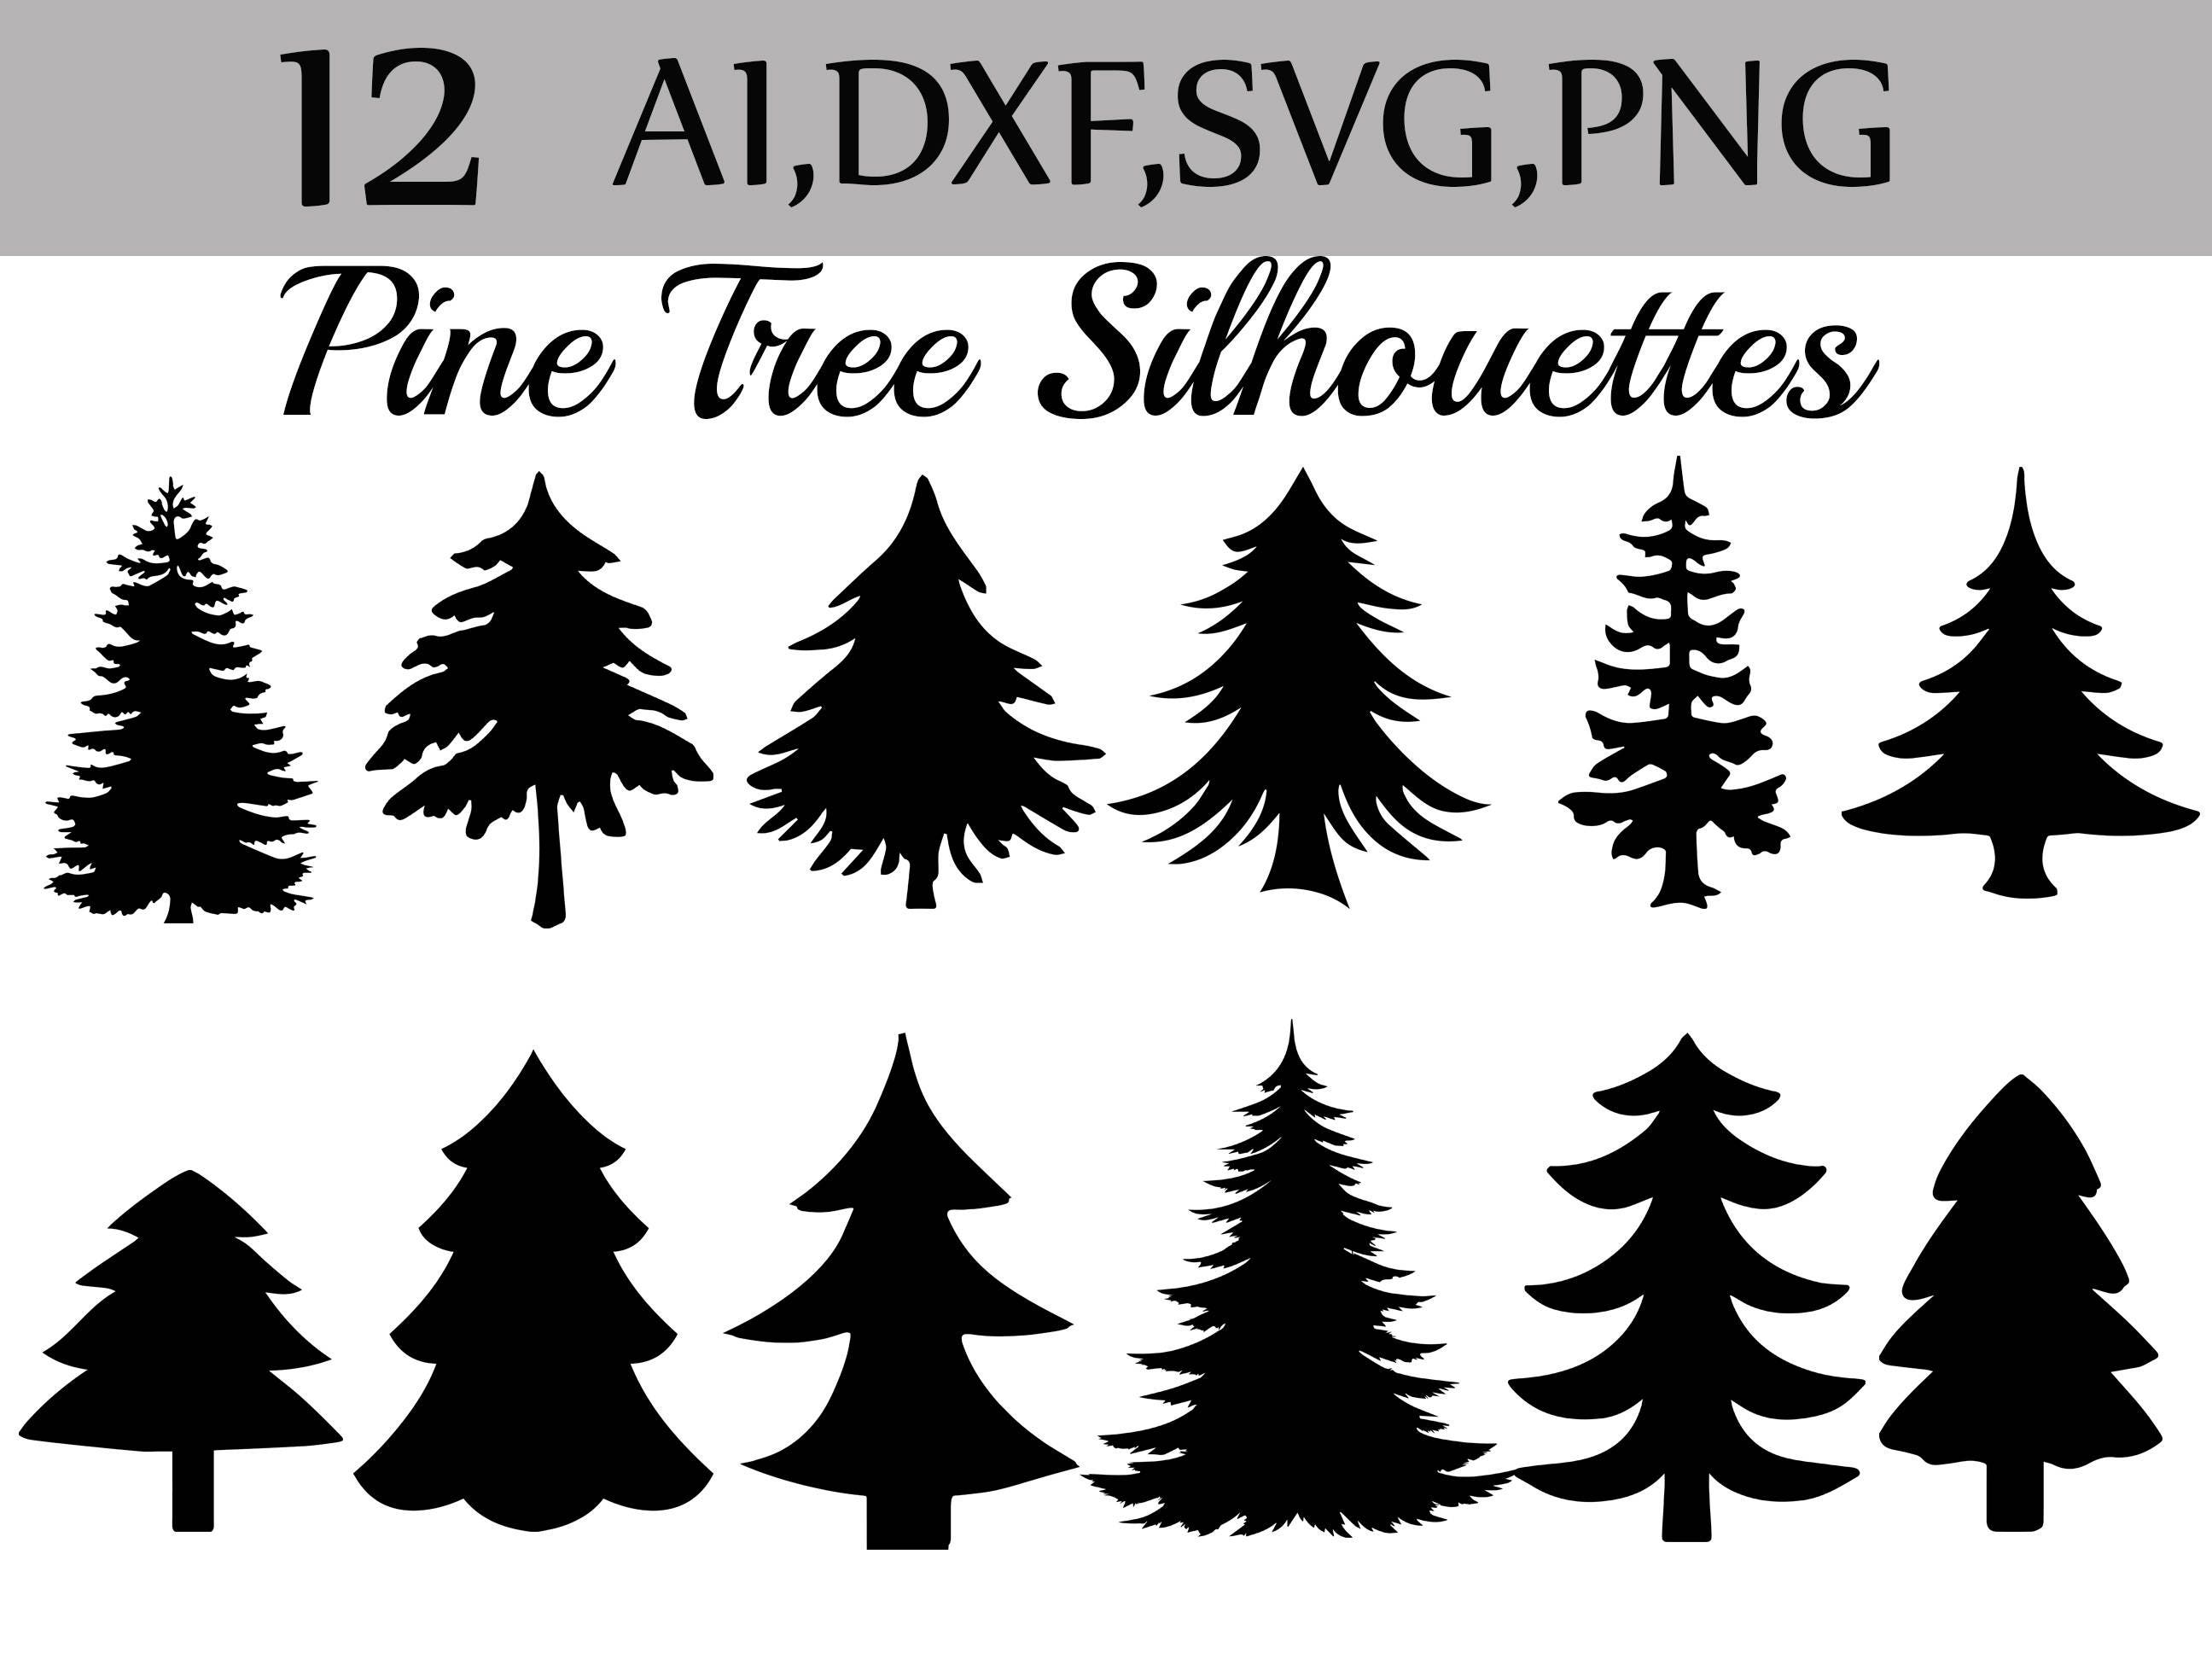 svg pine tree clipart silhouettes pine tree rh etsy com Simple Pine Tree Clip Art pine tree silhouette clip art vector